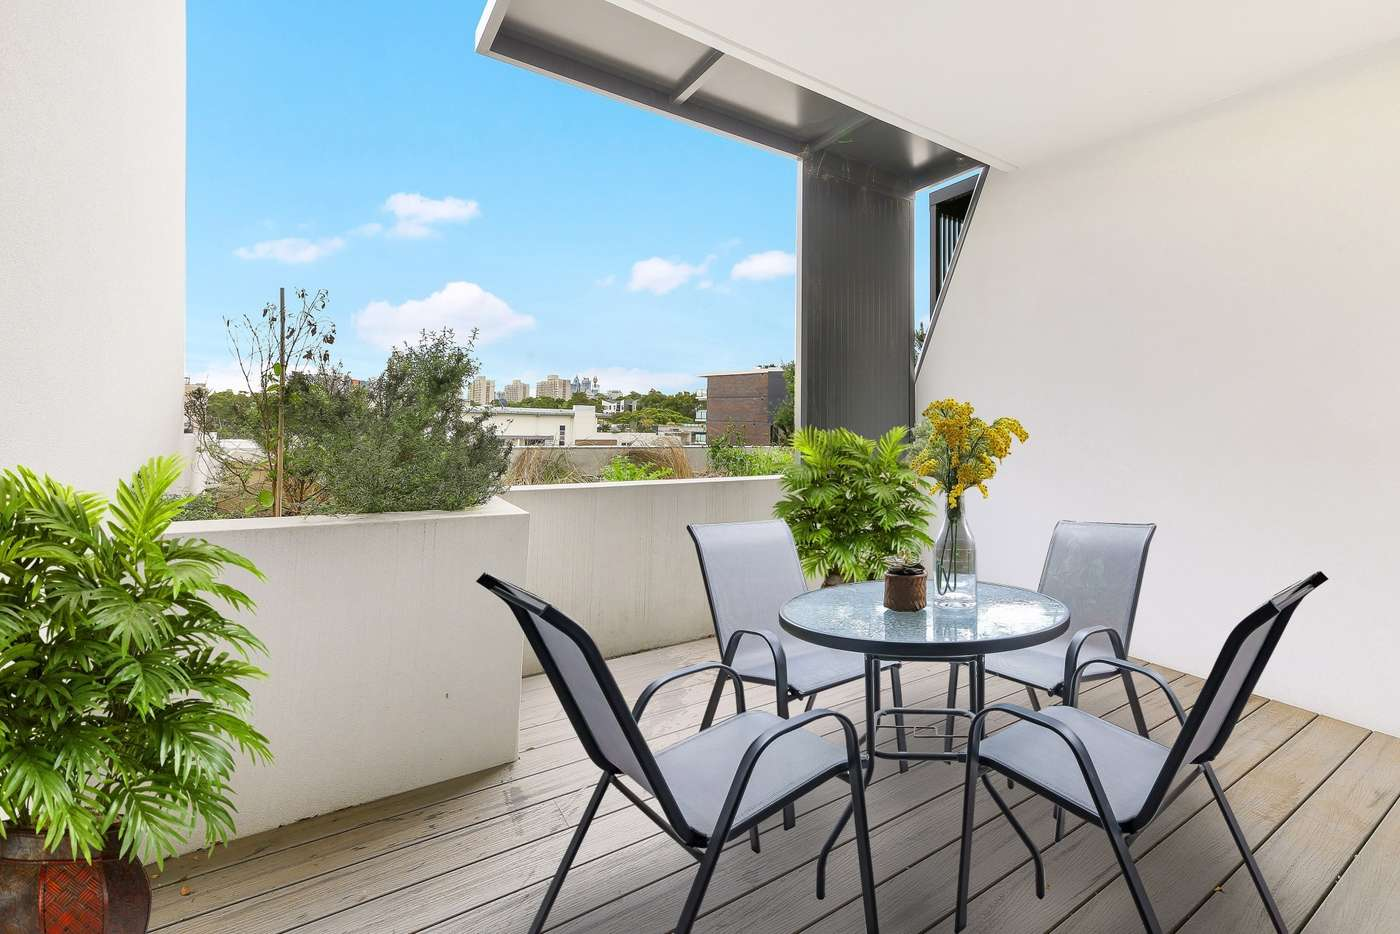 Main view of Homely apartment listing, 506/233 Botany Road, Waterloo NSW 2017